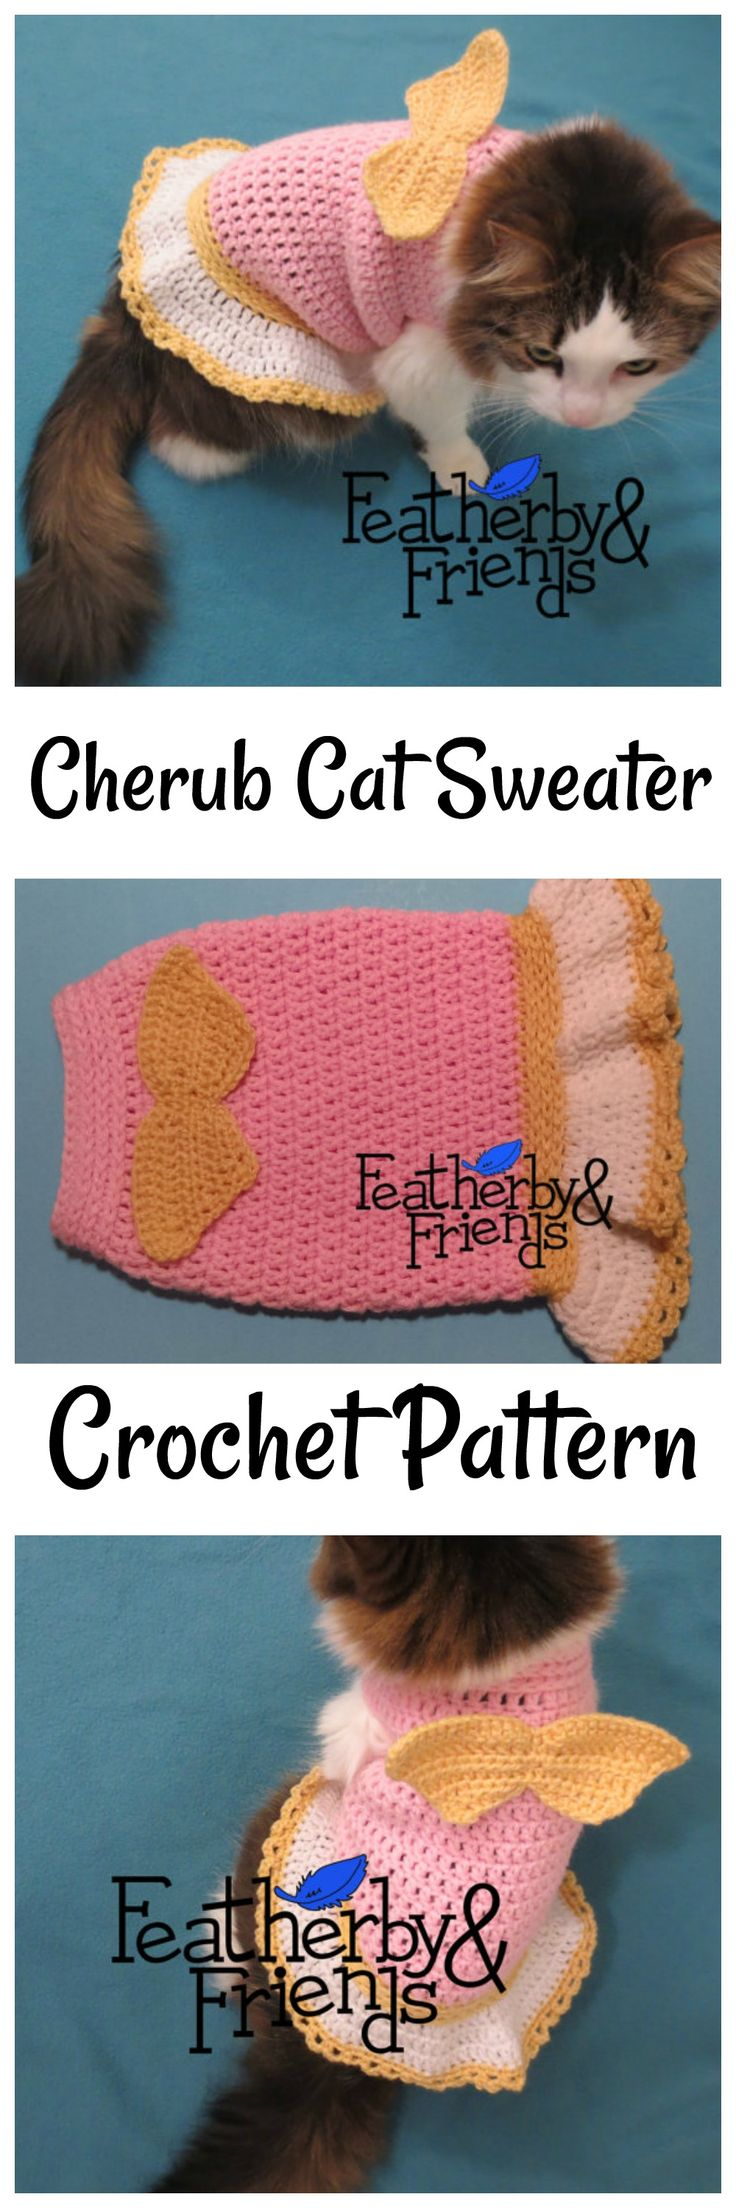 Little Cherub Pet Sweater crochet pattern for your furry little friend! #etsy #etsyseller #ad #cats #angel #catclothes #lol